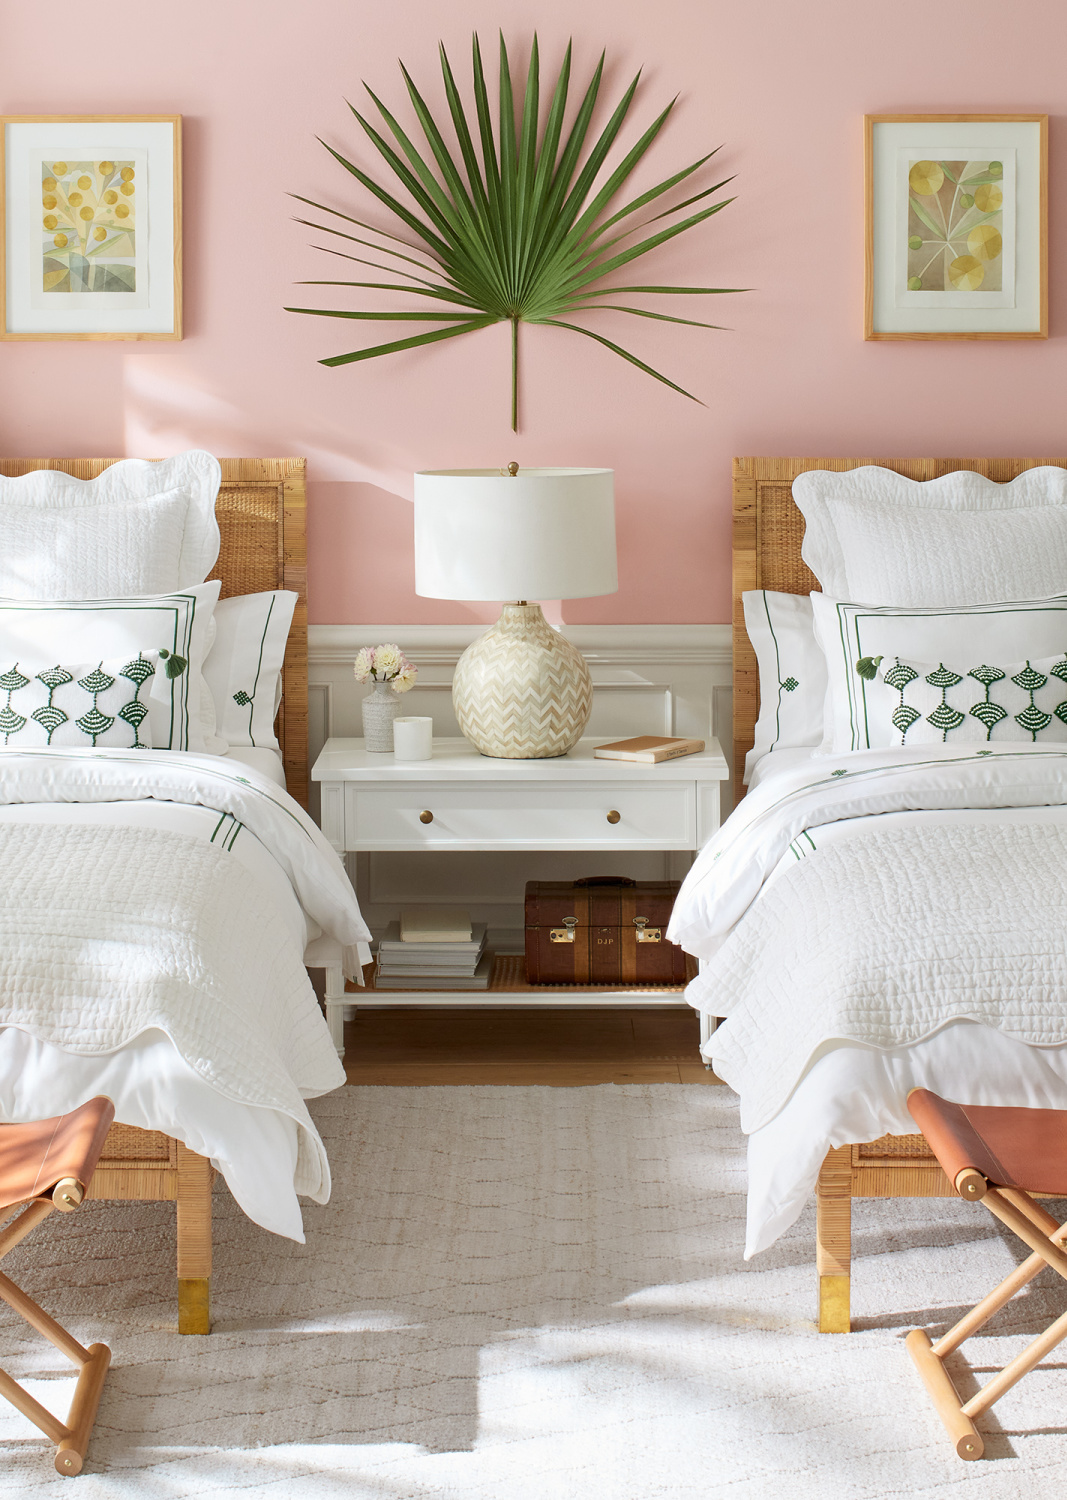 Pretty and classic coastal bedroom with candy pink wall, rattan beds, adn white bedding - Serena & Lily. #coastalcottage #bedroomfurniture #pinkbedrooms